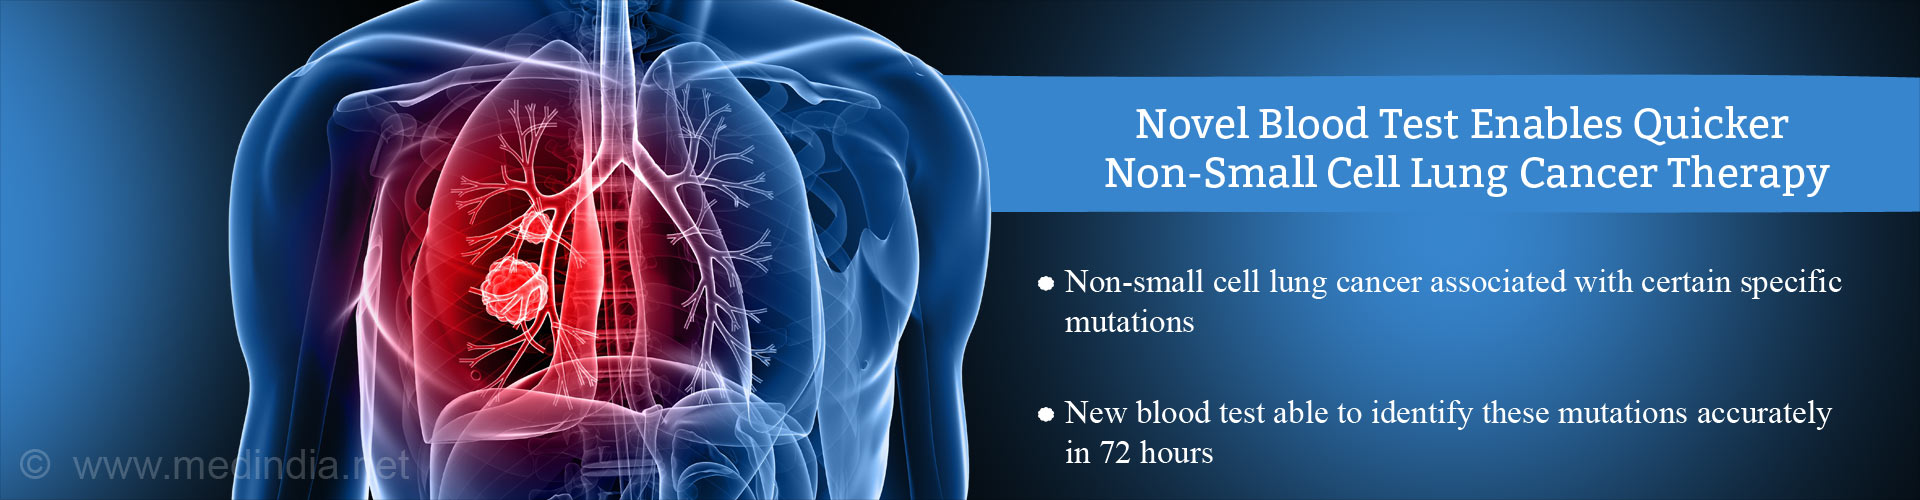 Novel Blood Test Allows Quicker, Precise Therapy of Non-Small Cell Lung Cancer